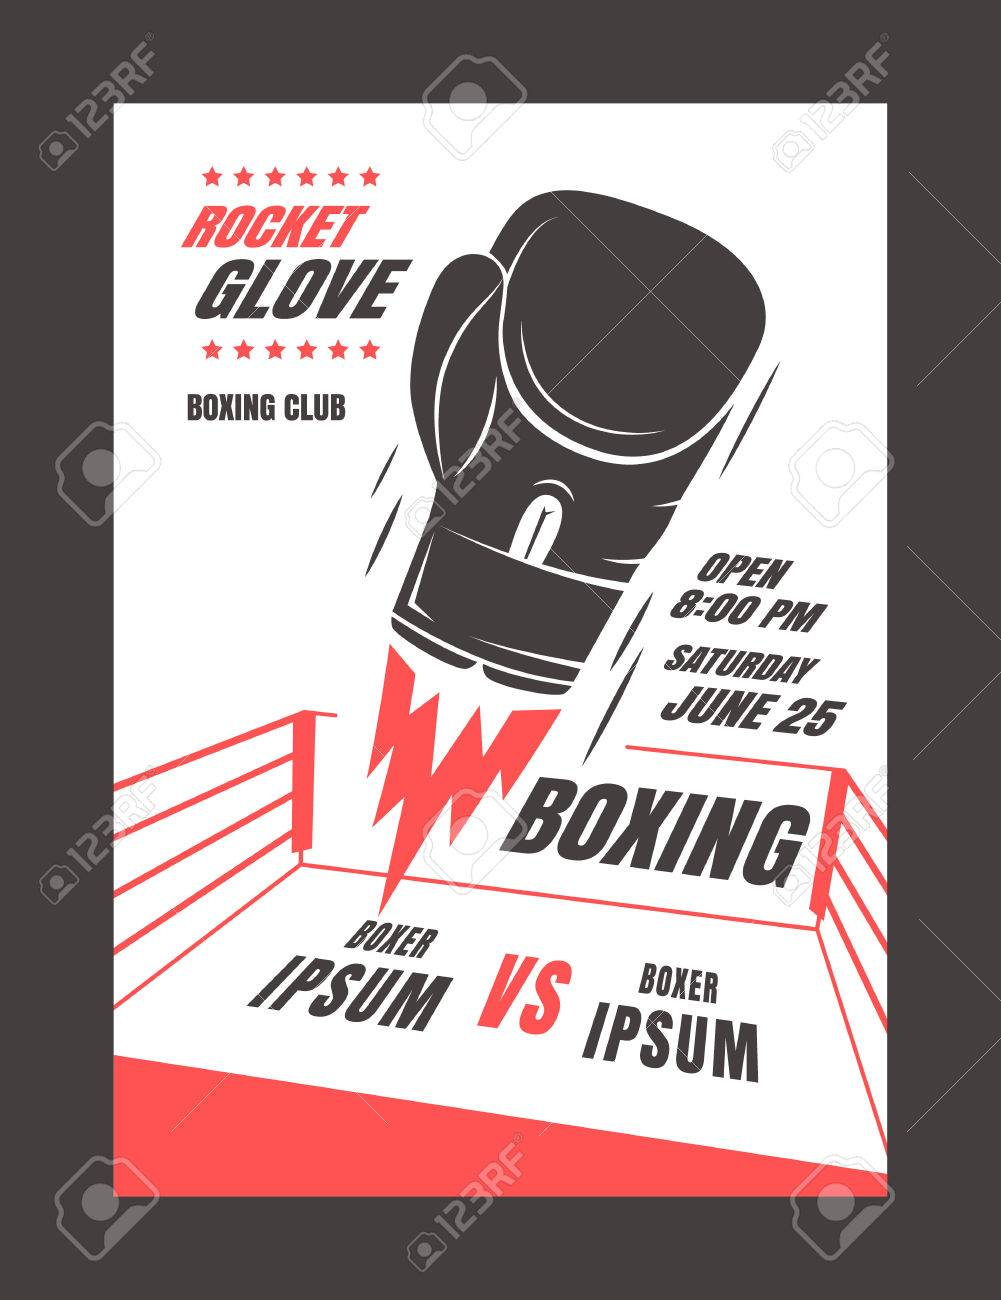 Boxing Championship Poster Template Design. Glove Rocket. Royalty ...